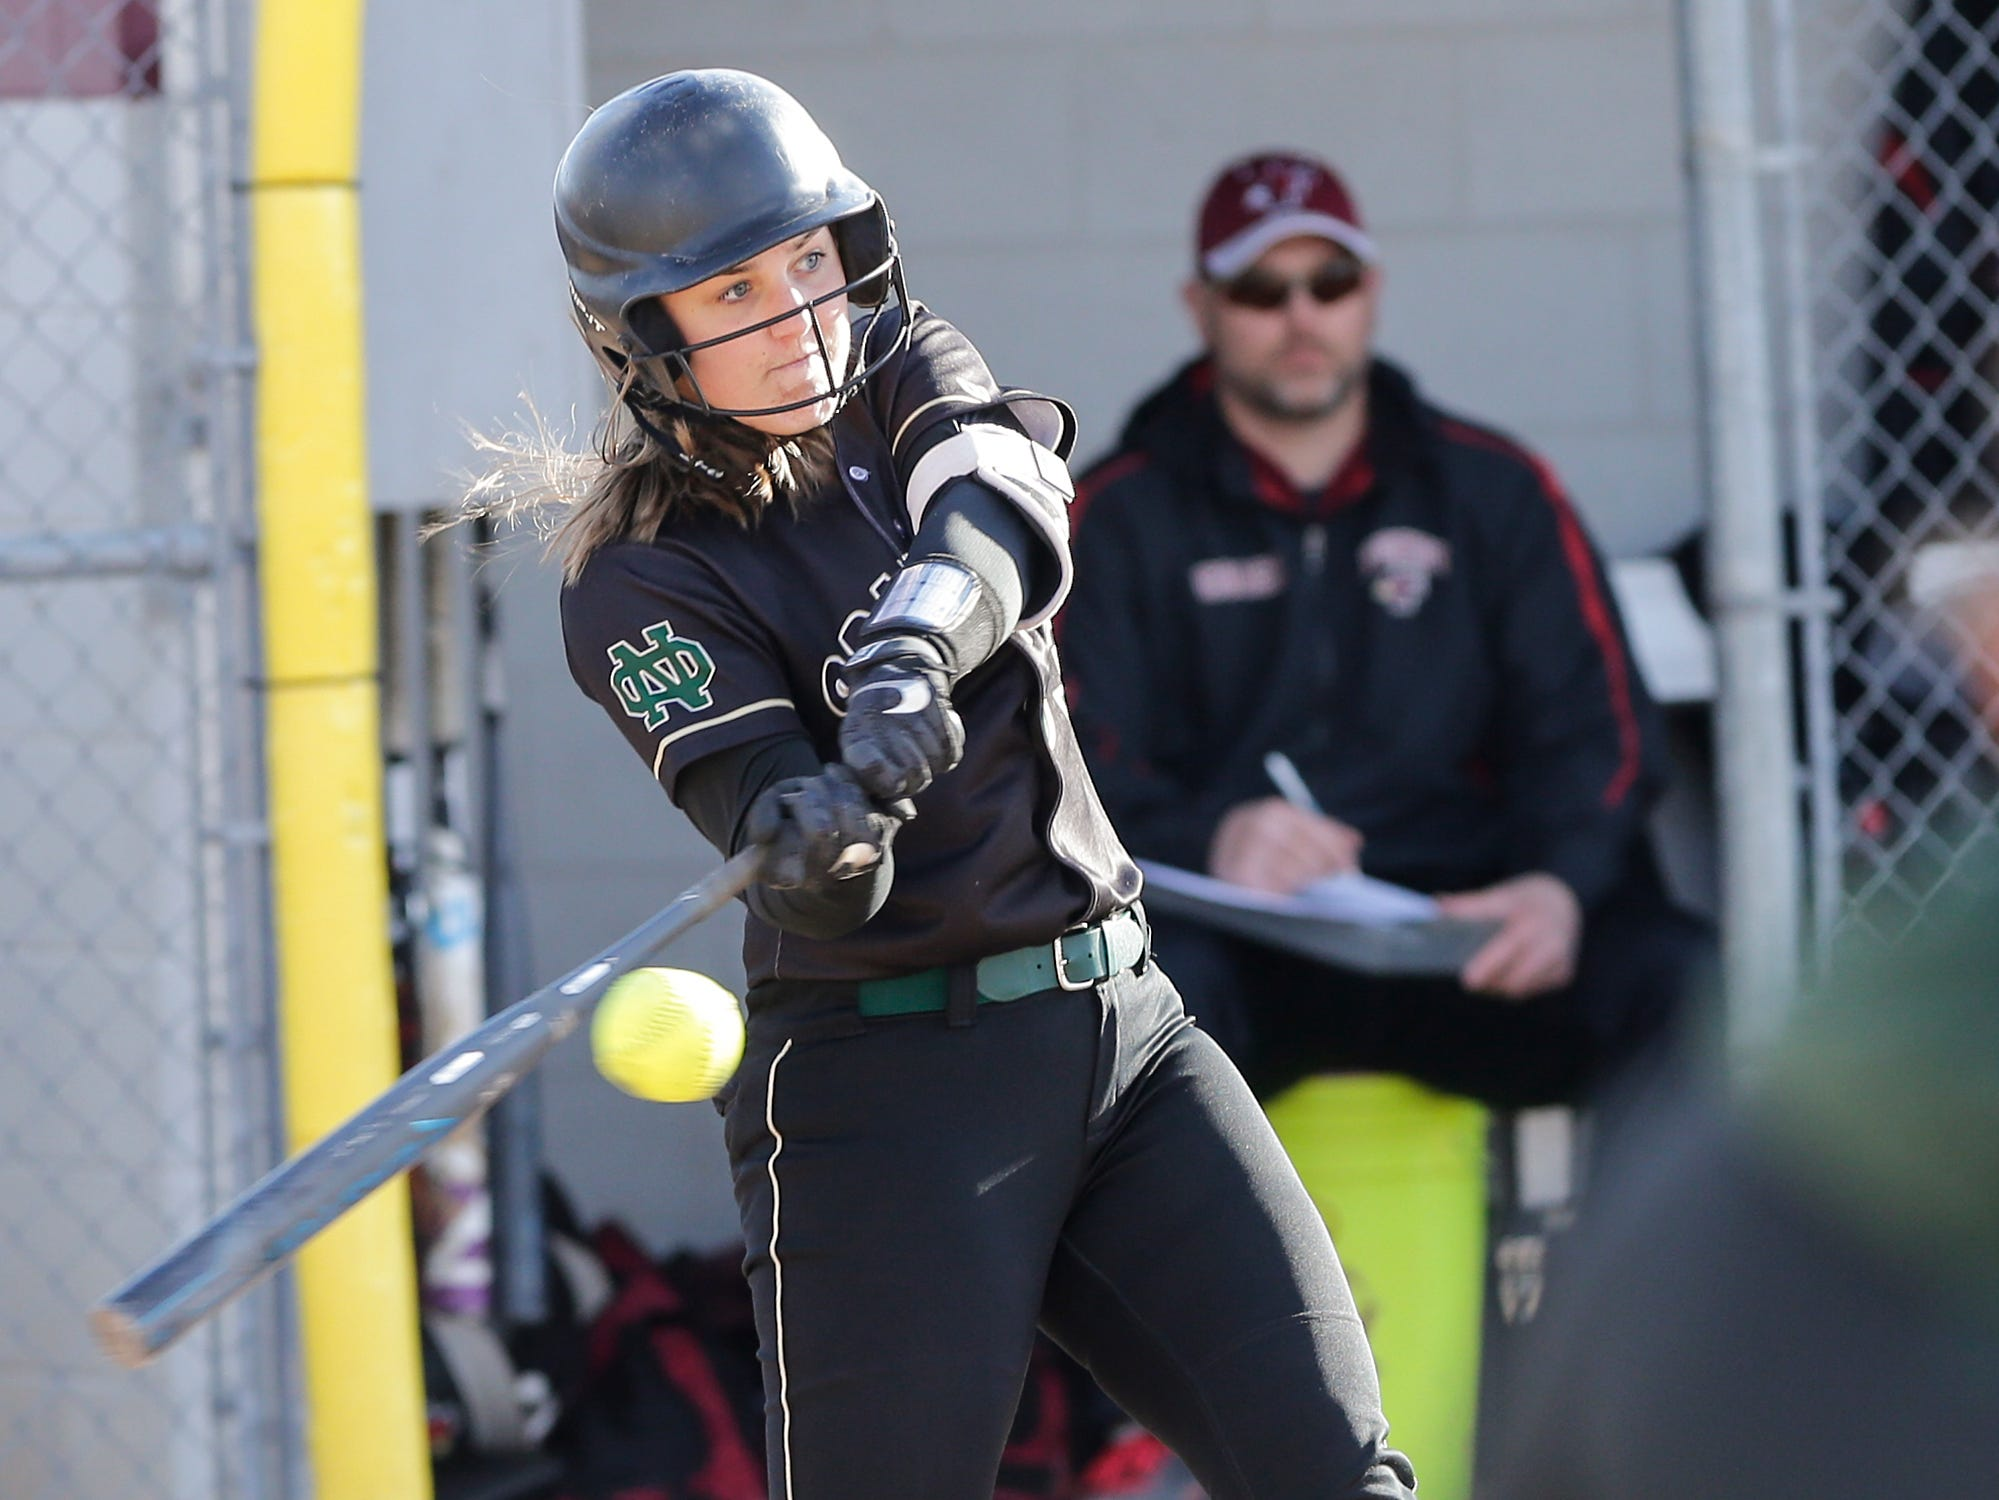 Oshkosh North High School softball's Libby Meveau swings at a pitch against Fond du Lac High School during their game Friday, April 26, 2019 in Fond du Lac, Wis. Doug Raflik/USA TODAY NETWORK-Wisconsin